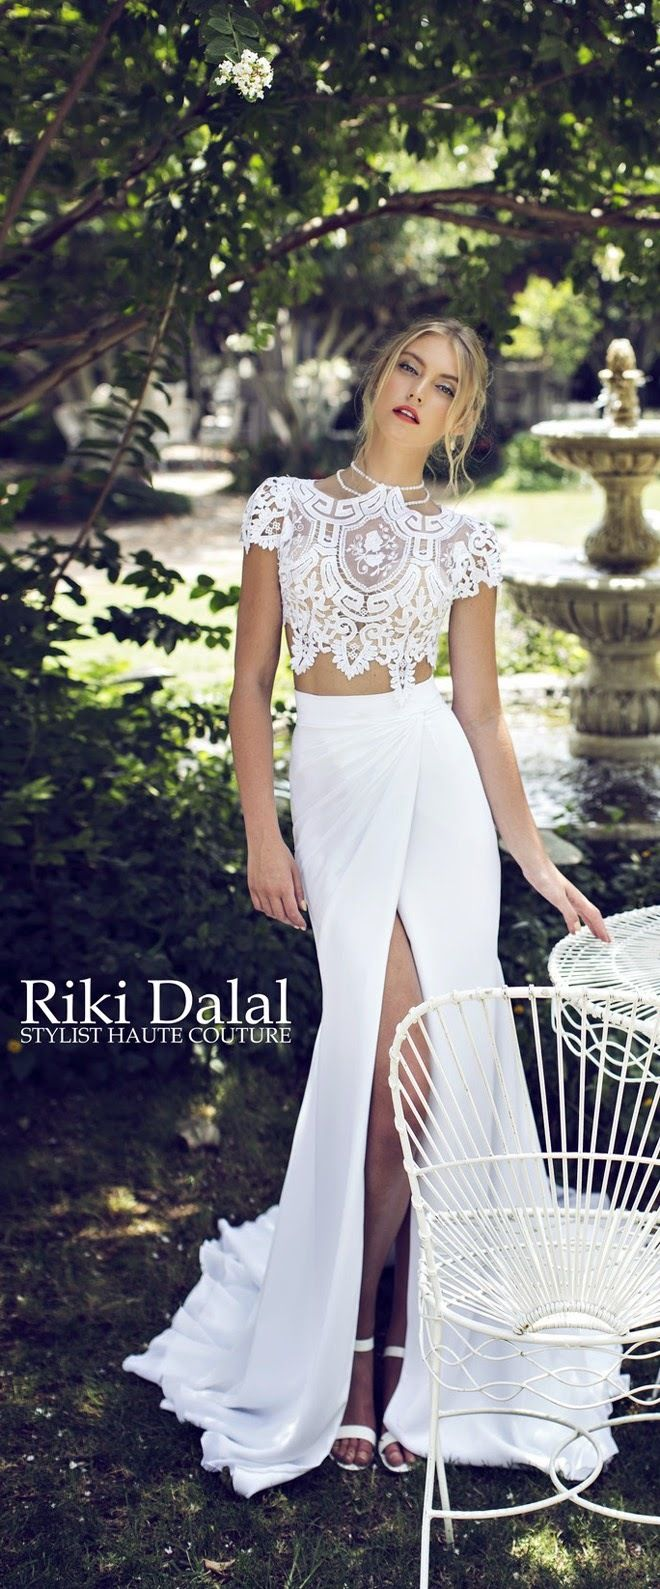 "Bringing luxury to life should be the tagline behind Riki Dalal luxury bridal wear. If feminine vibes and glamorous designs send your heart aflutter, then you'll adore Riki Dalal's new ""Provence"" Collection. A real feast"